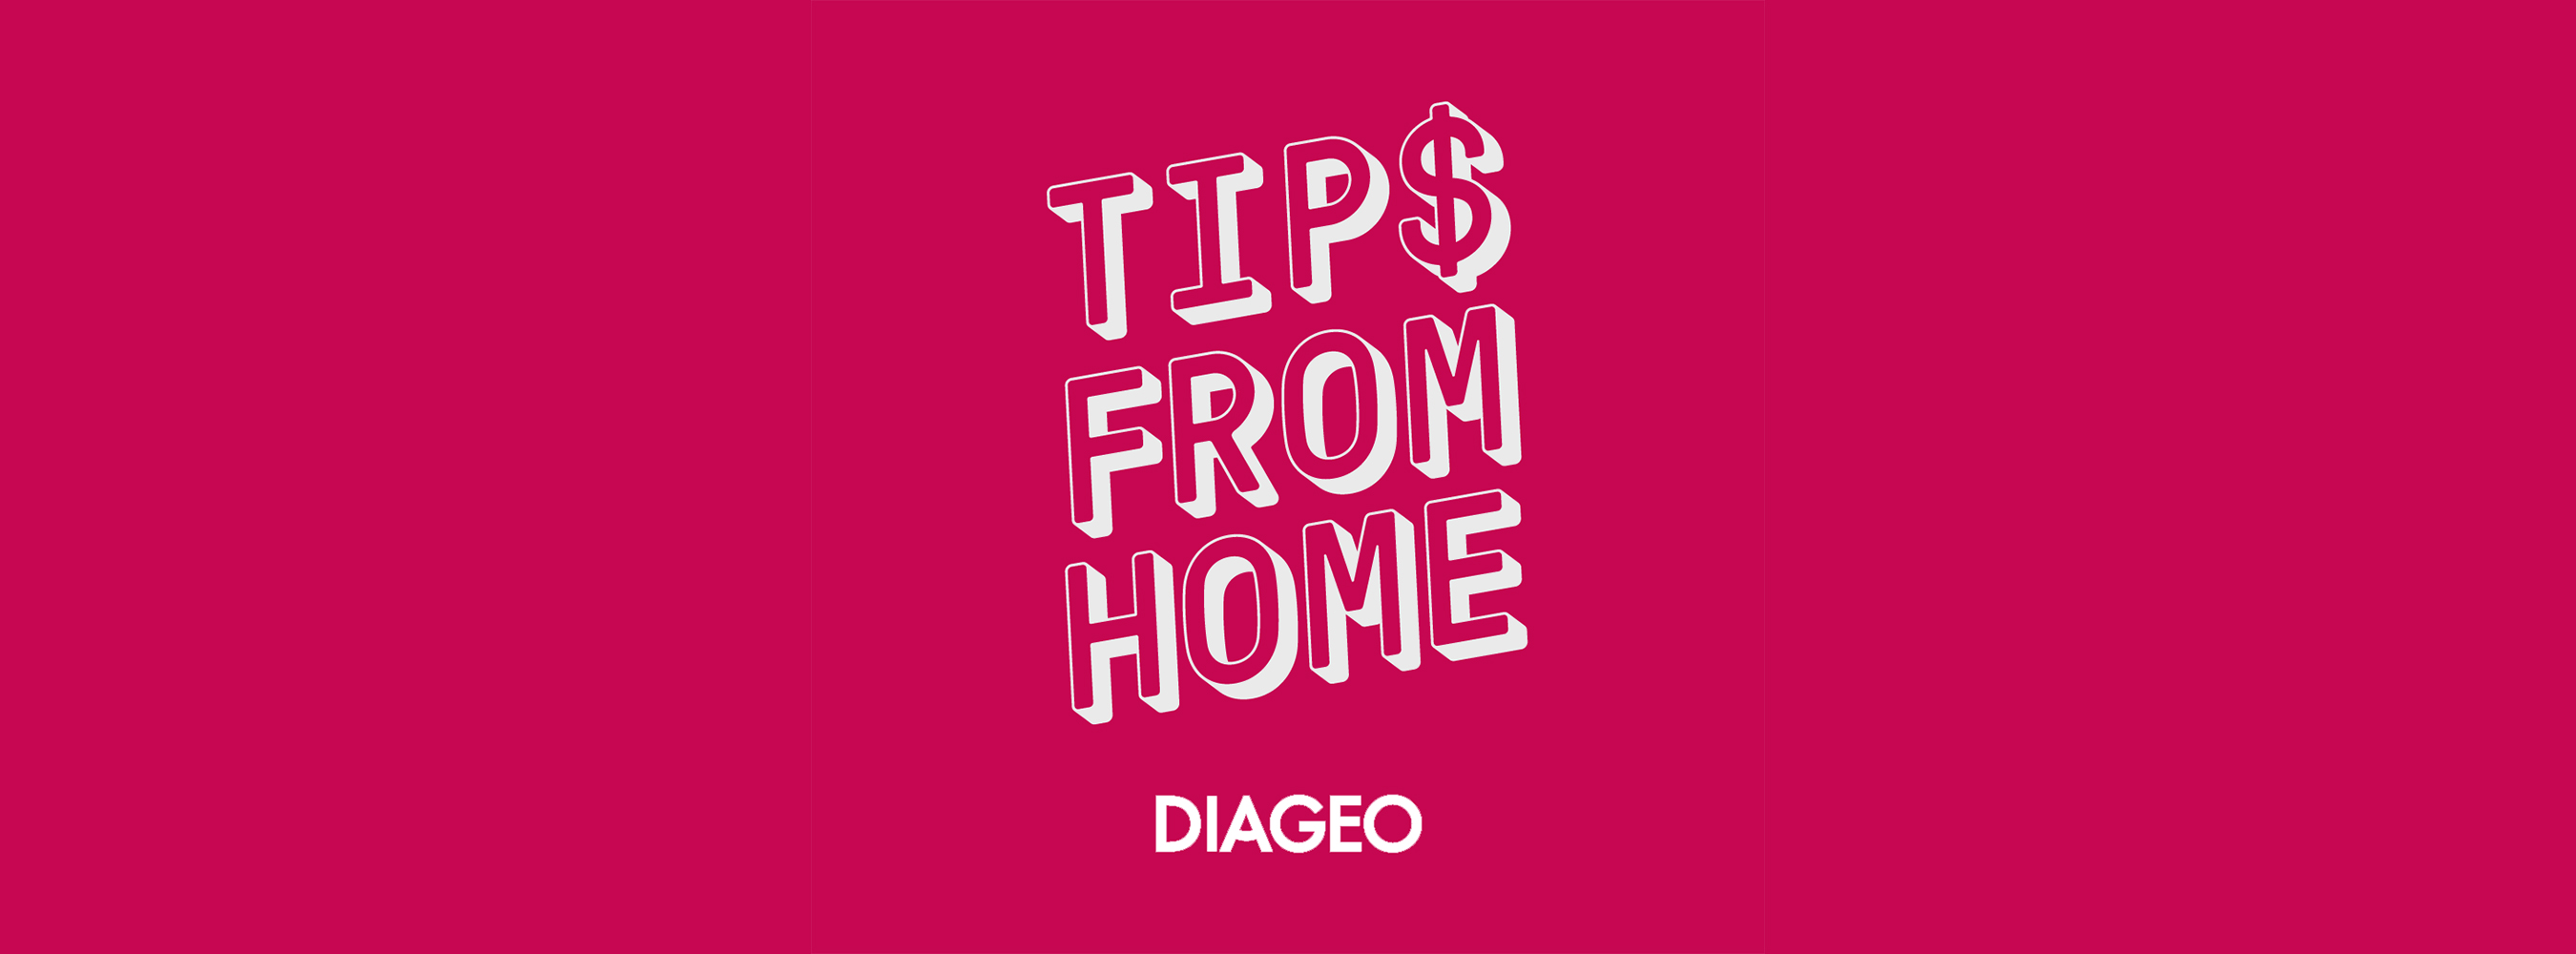 Diageo North America announces #TipsFromHome social pledge movement to rally further support for the bar & restaurant community #DiageoDonation